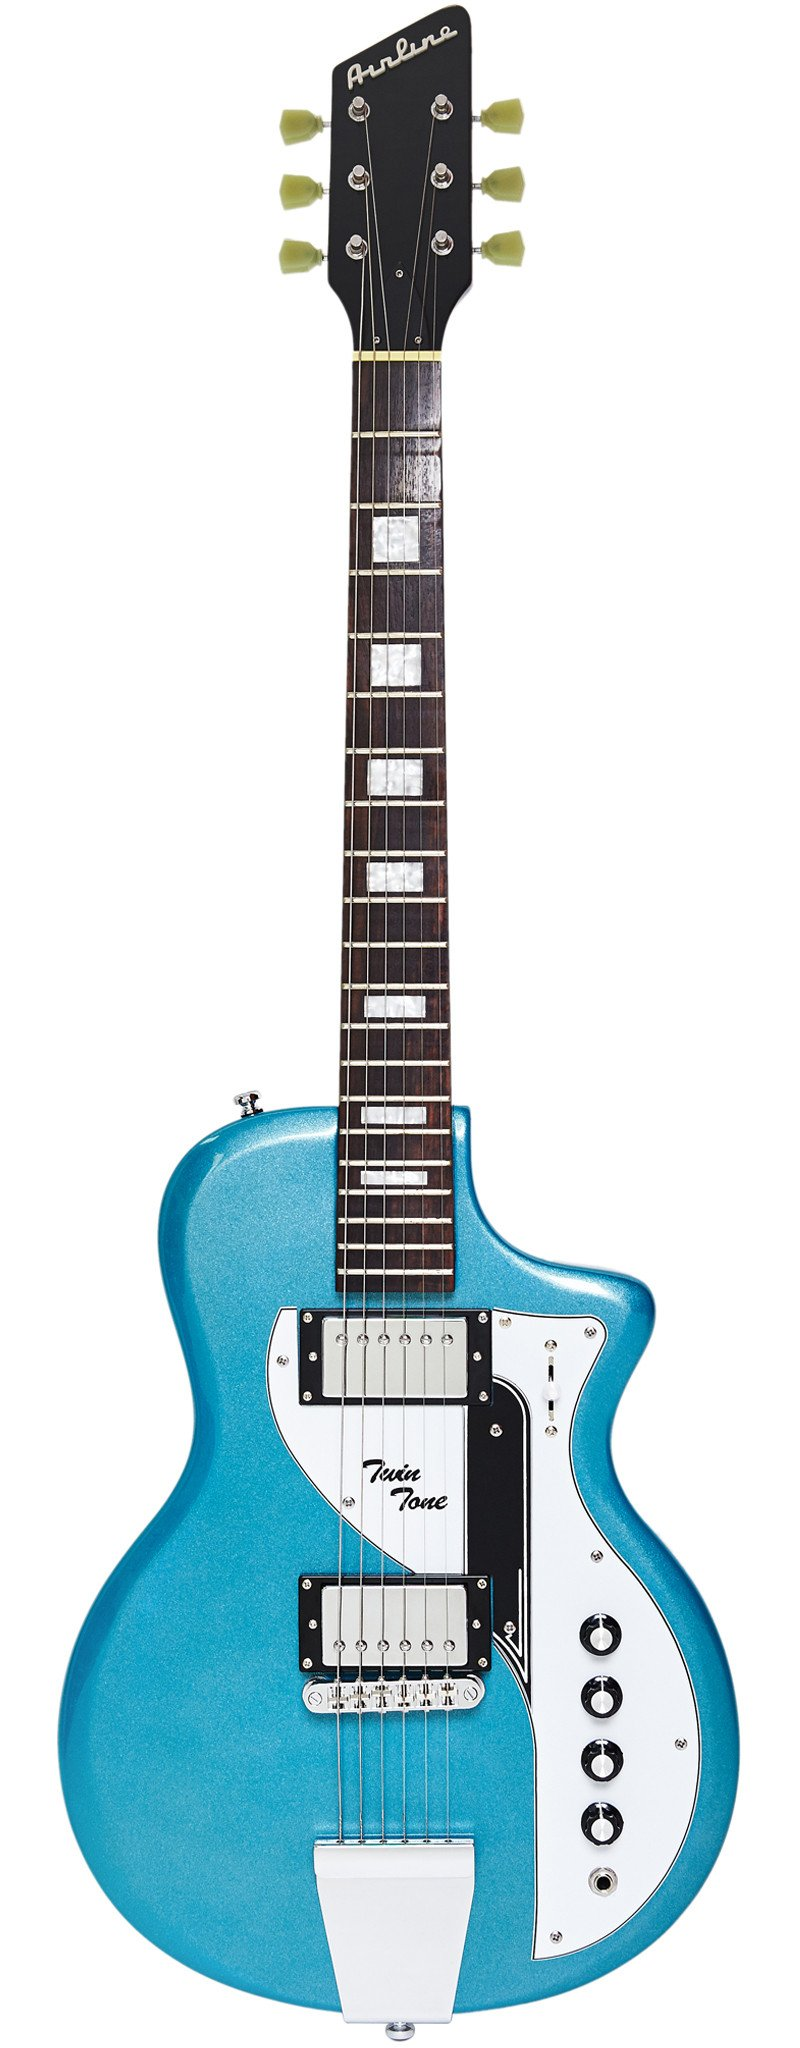 Eastwood Guitars Airline Twin Tone Metallic Blue Full Front